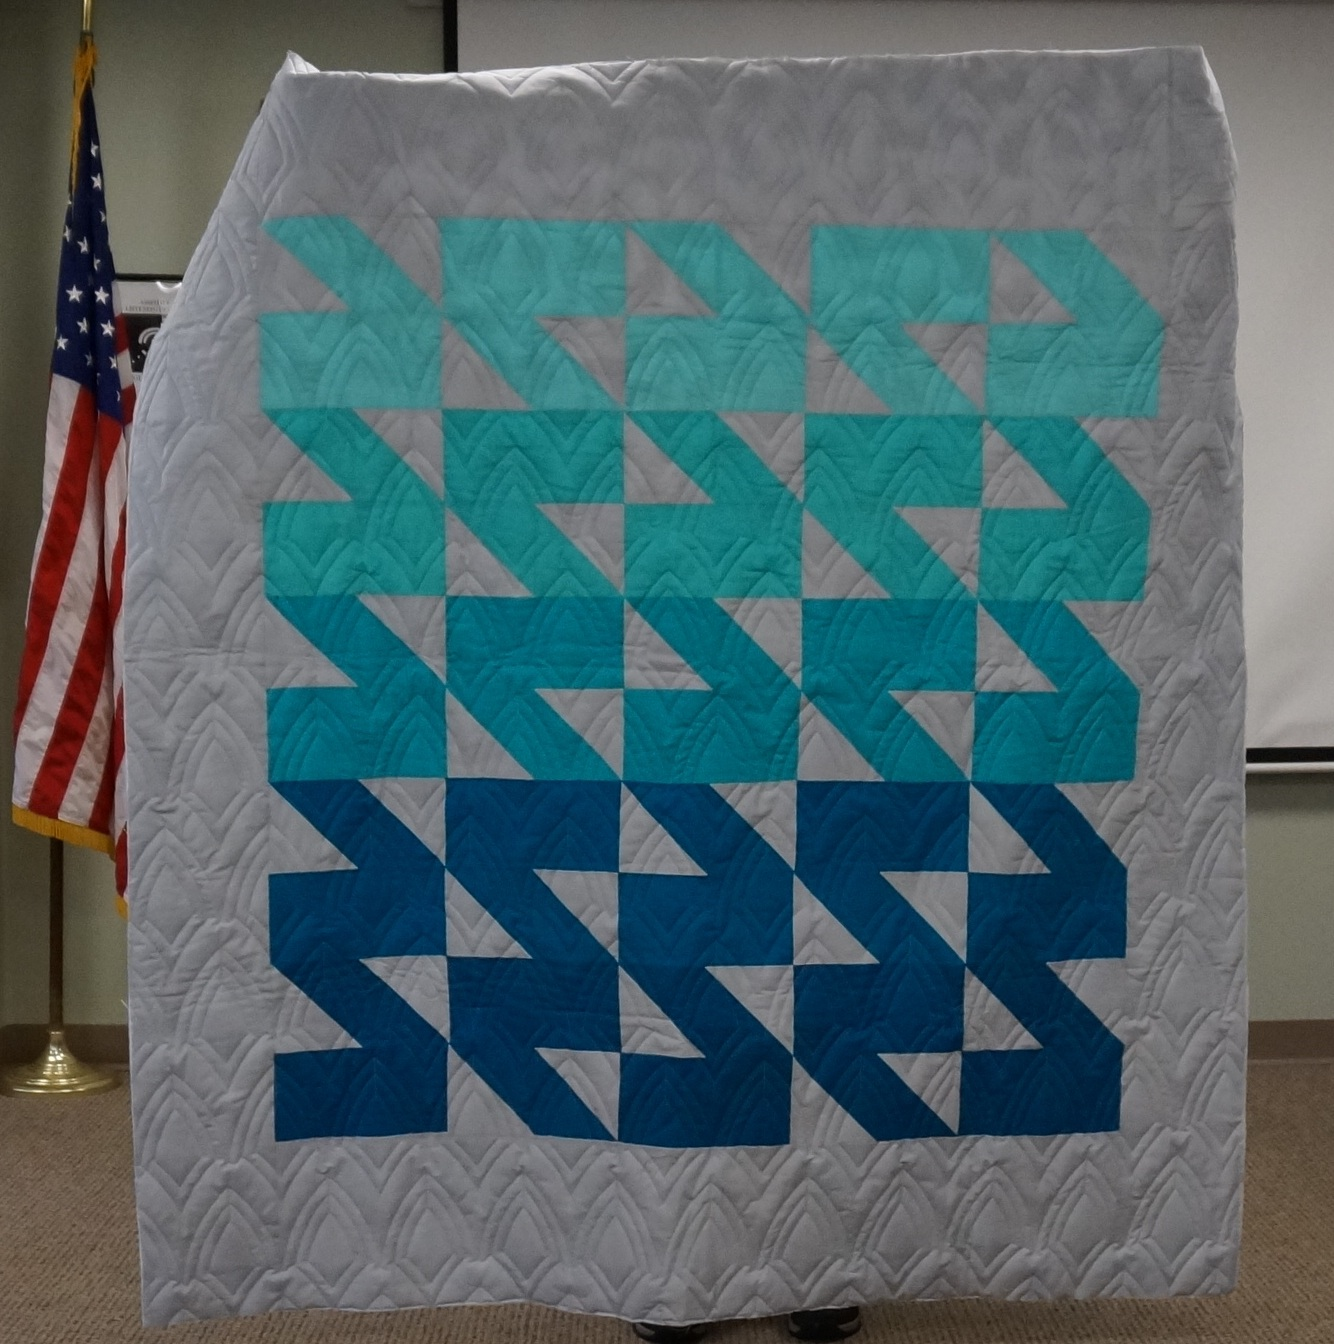 Kathy finished the quilting on this quilt for her son's girlfriend.